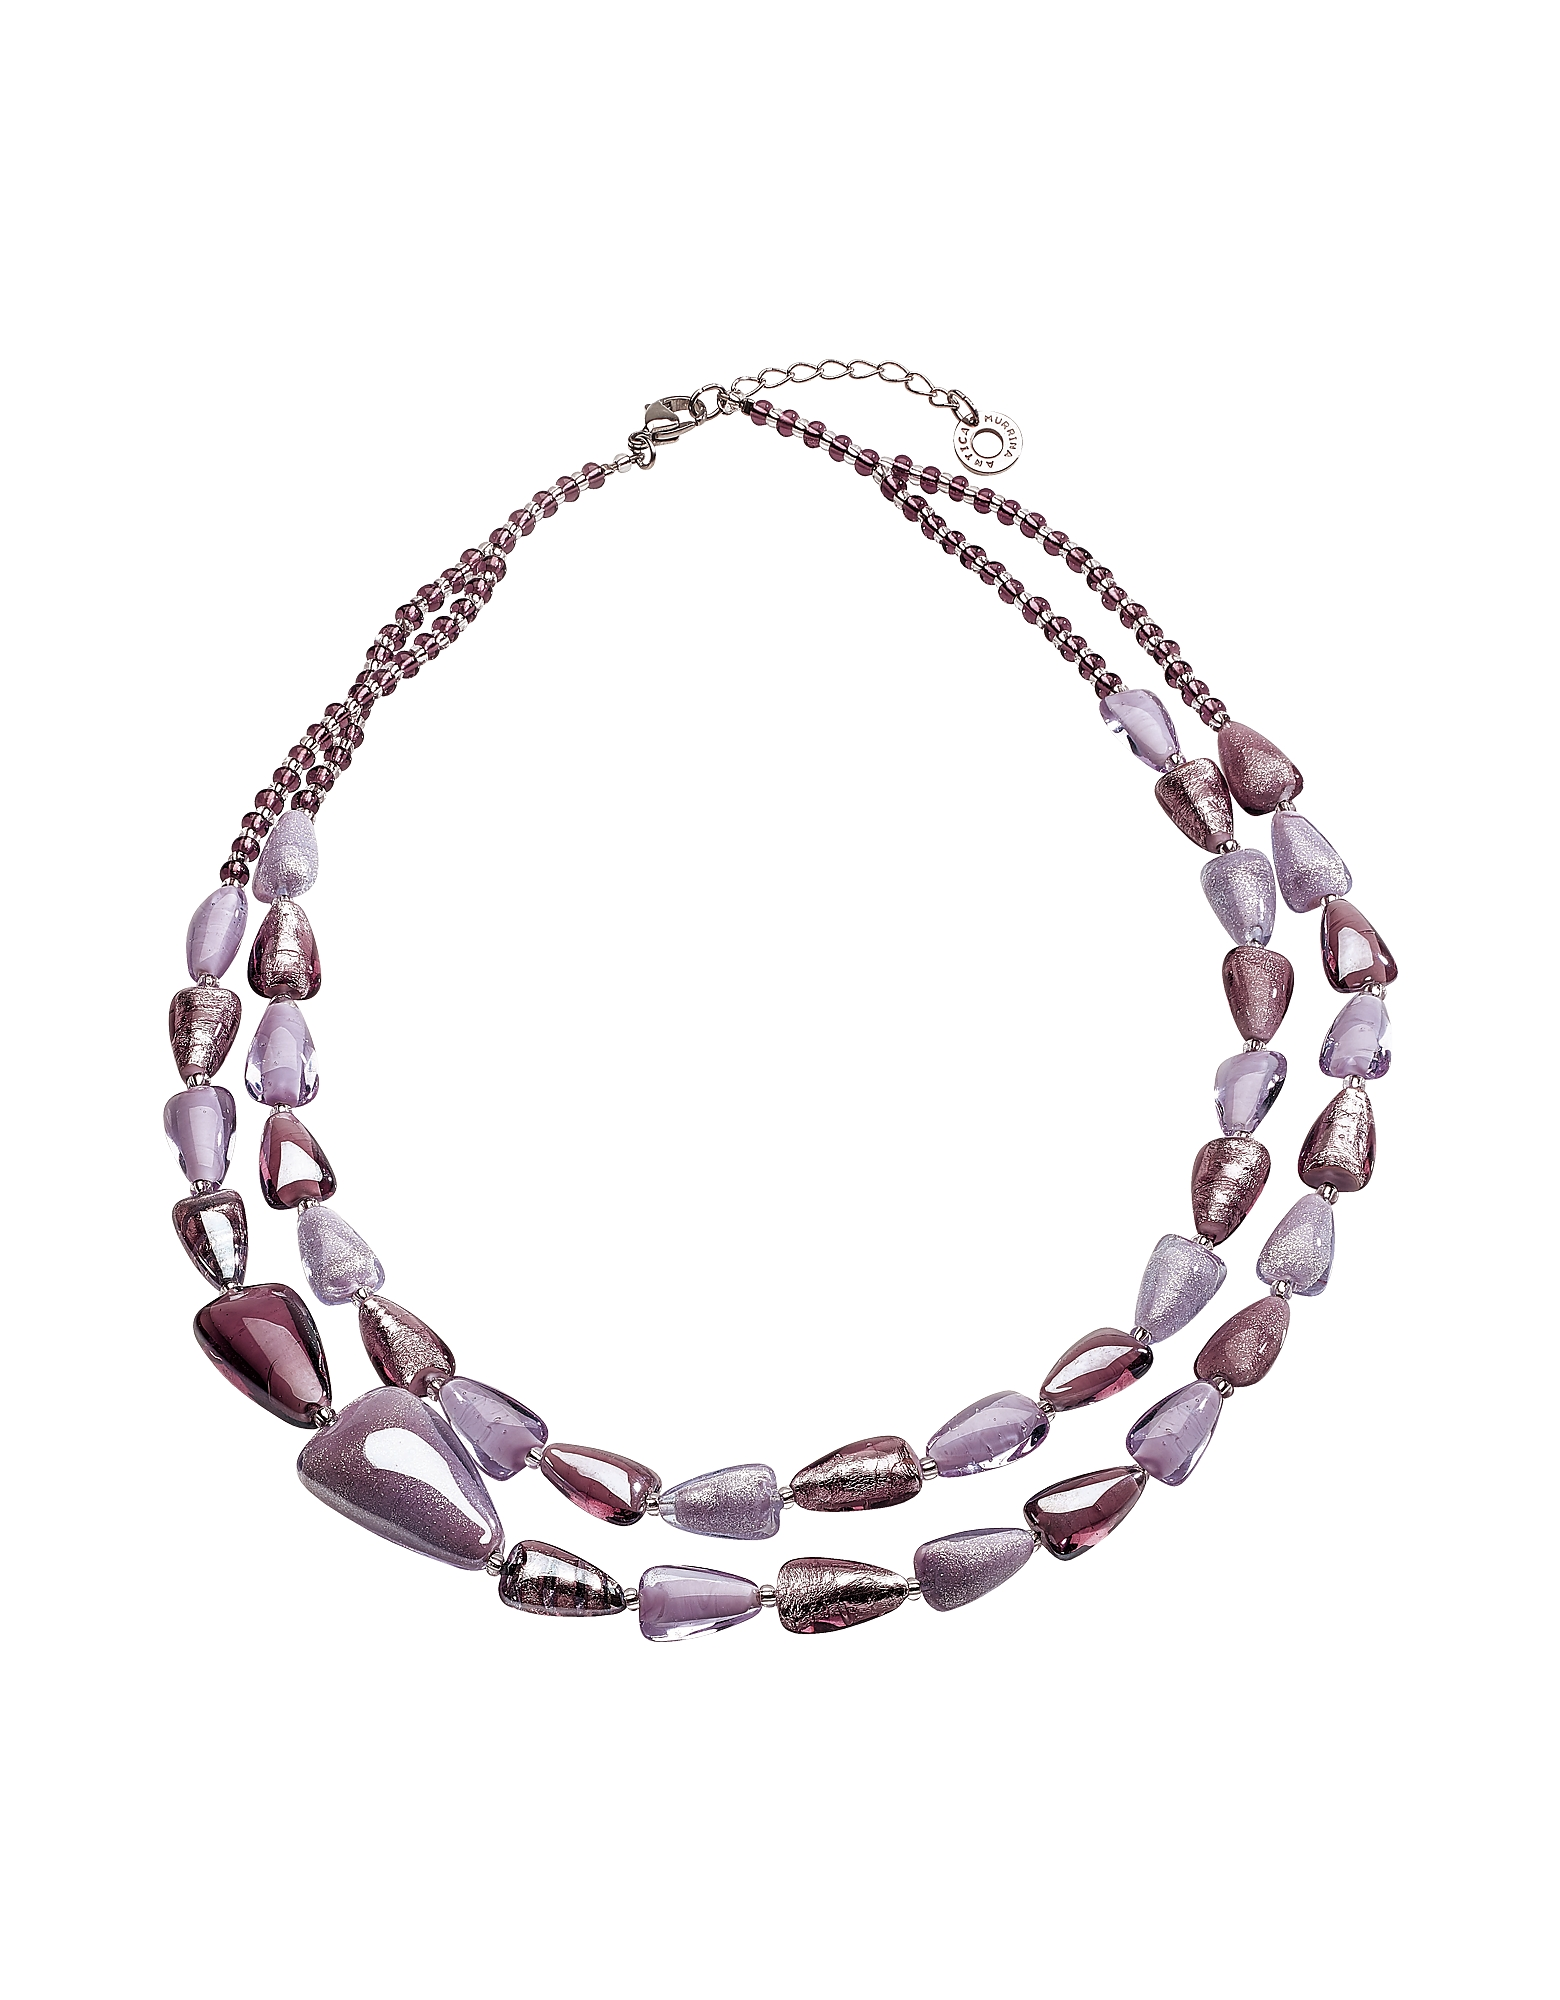 Antica Murrina Necklaces, Marina 1 Necklace